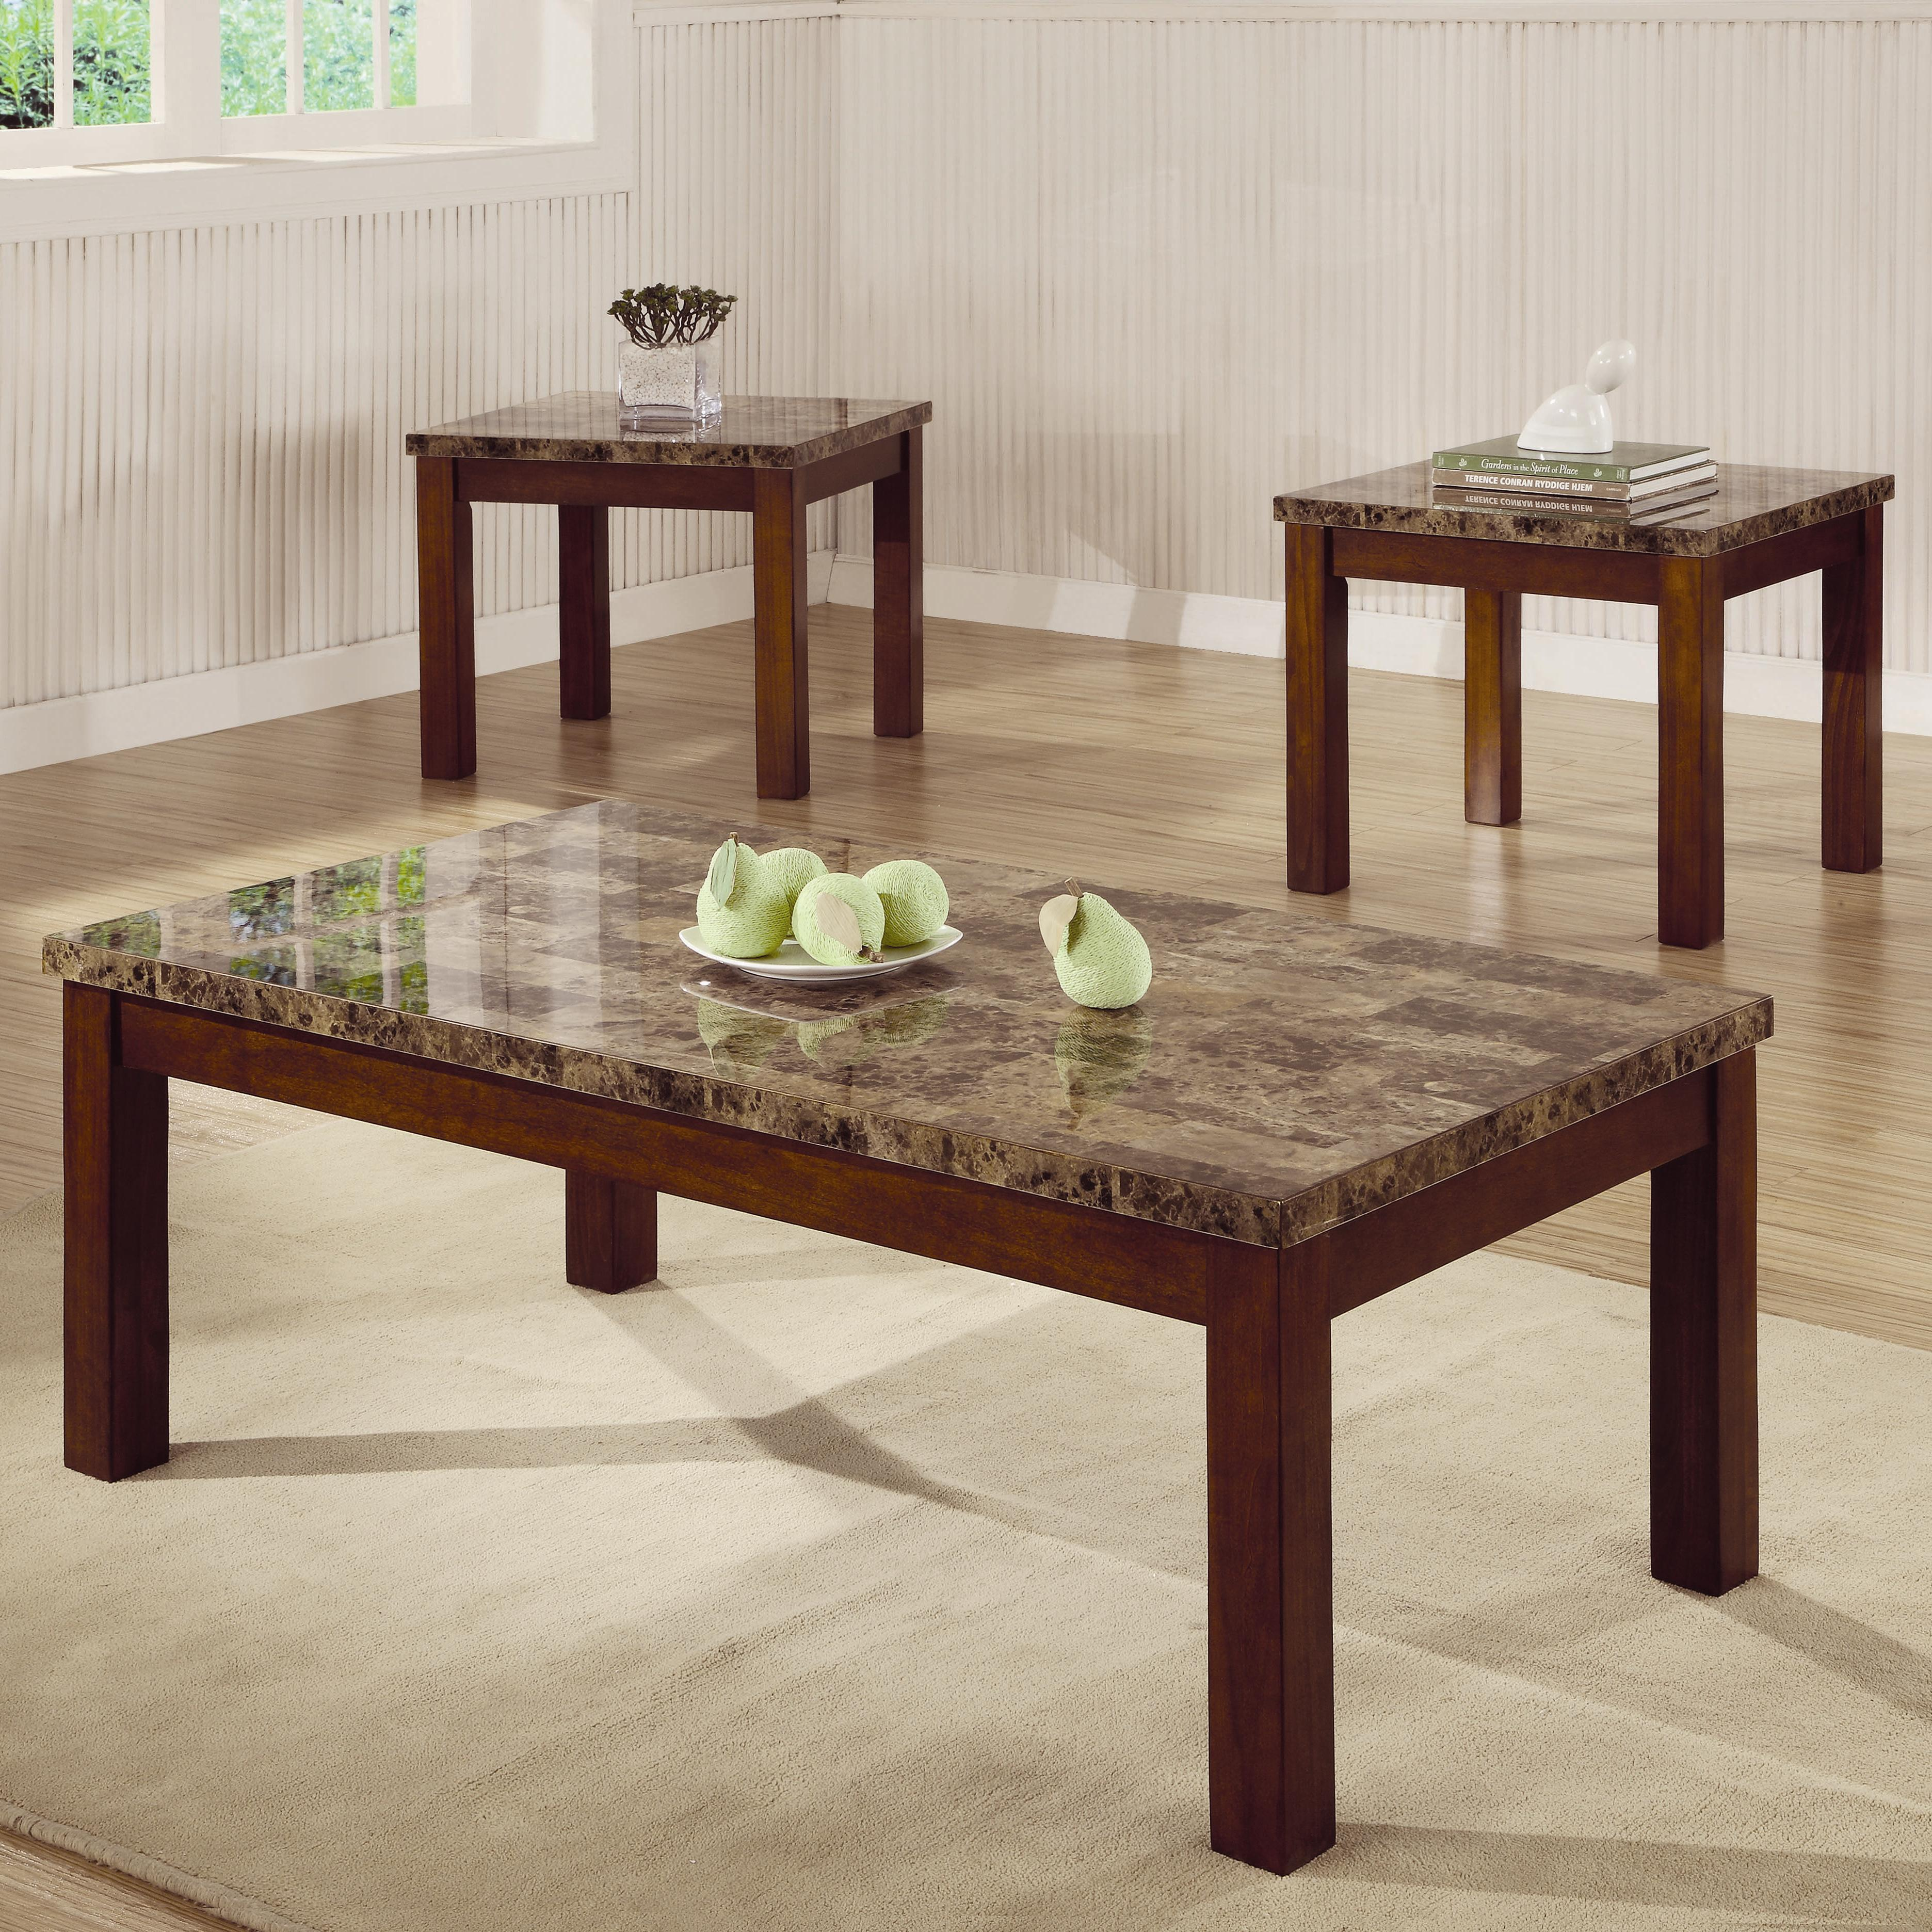 Coaster Occasional Table Sets 3 Piece Table Set - Item Number: 700305